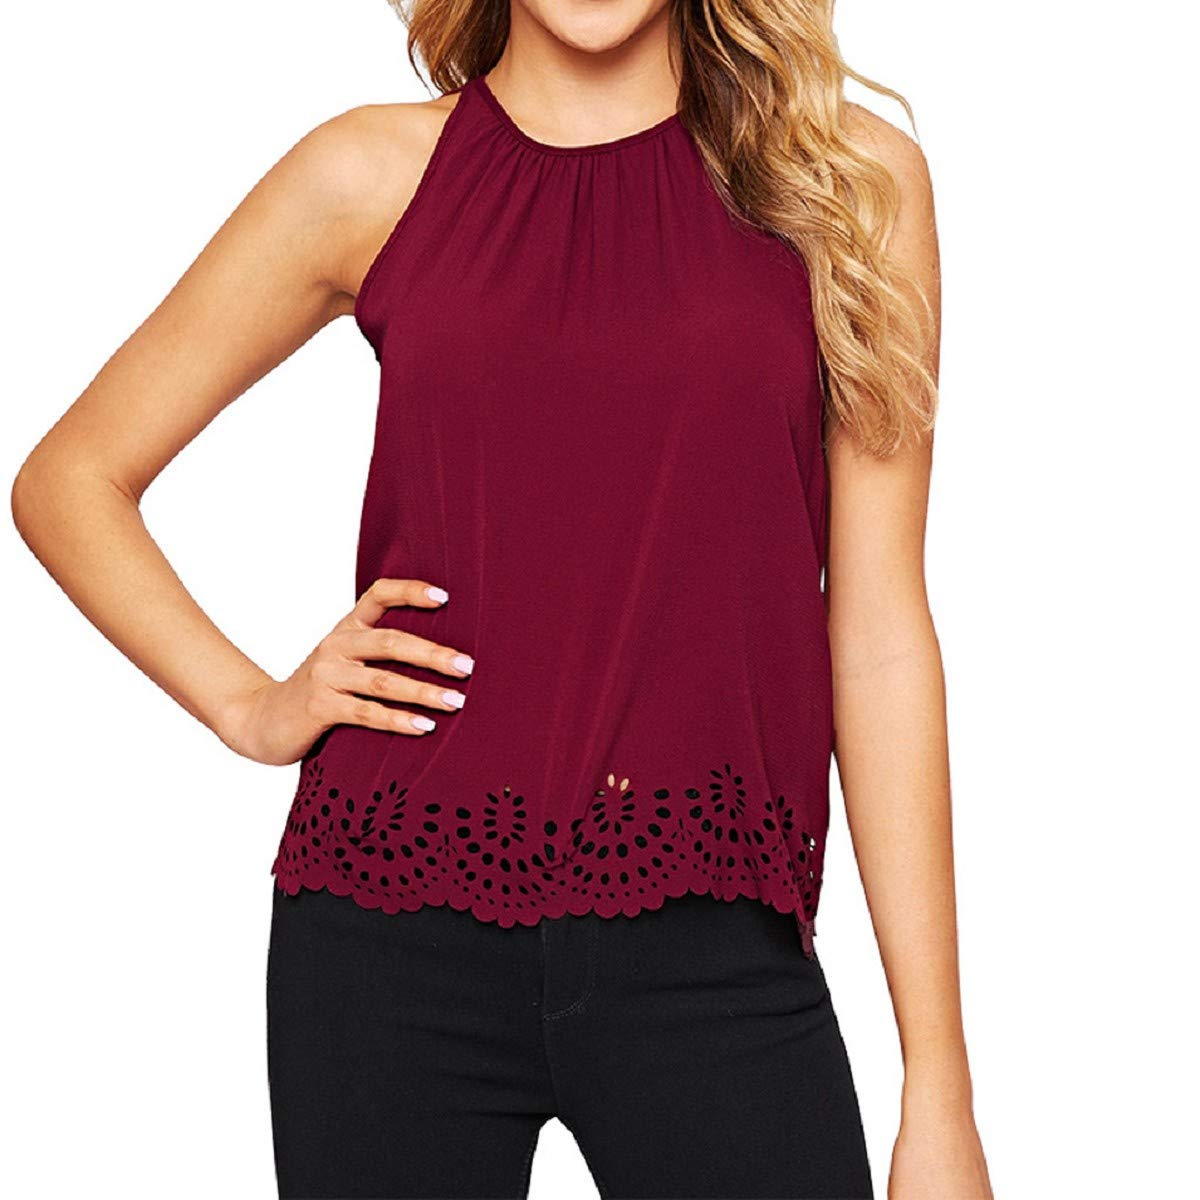 Fashion Women Solid O-Neck Off Shoulder Sleeveless Hollow Out Crop Tank Top Blouse OTINICE Red